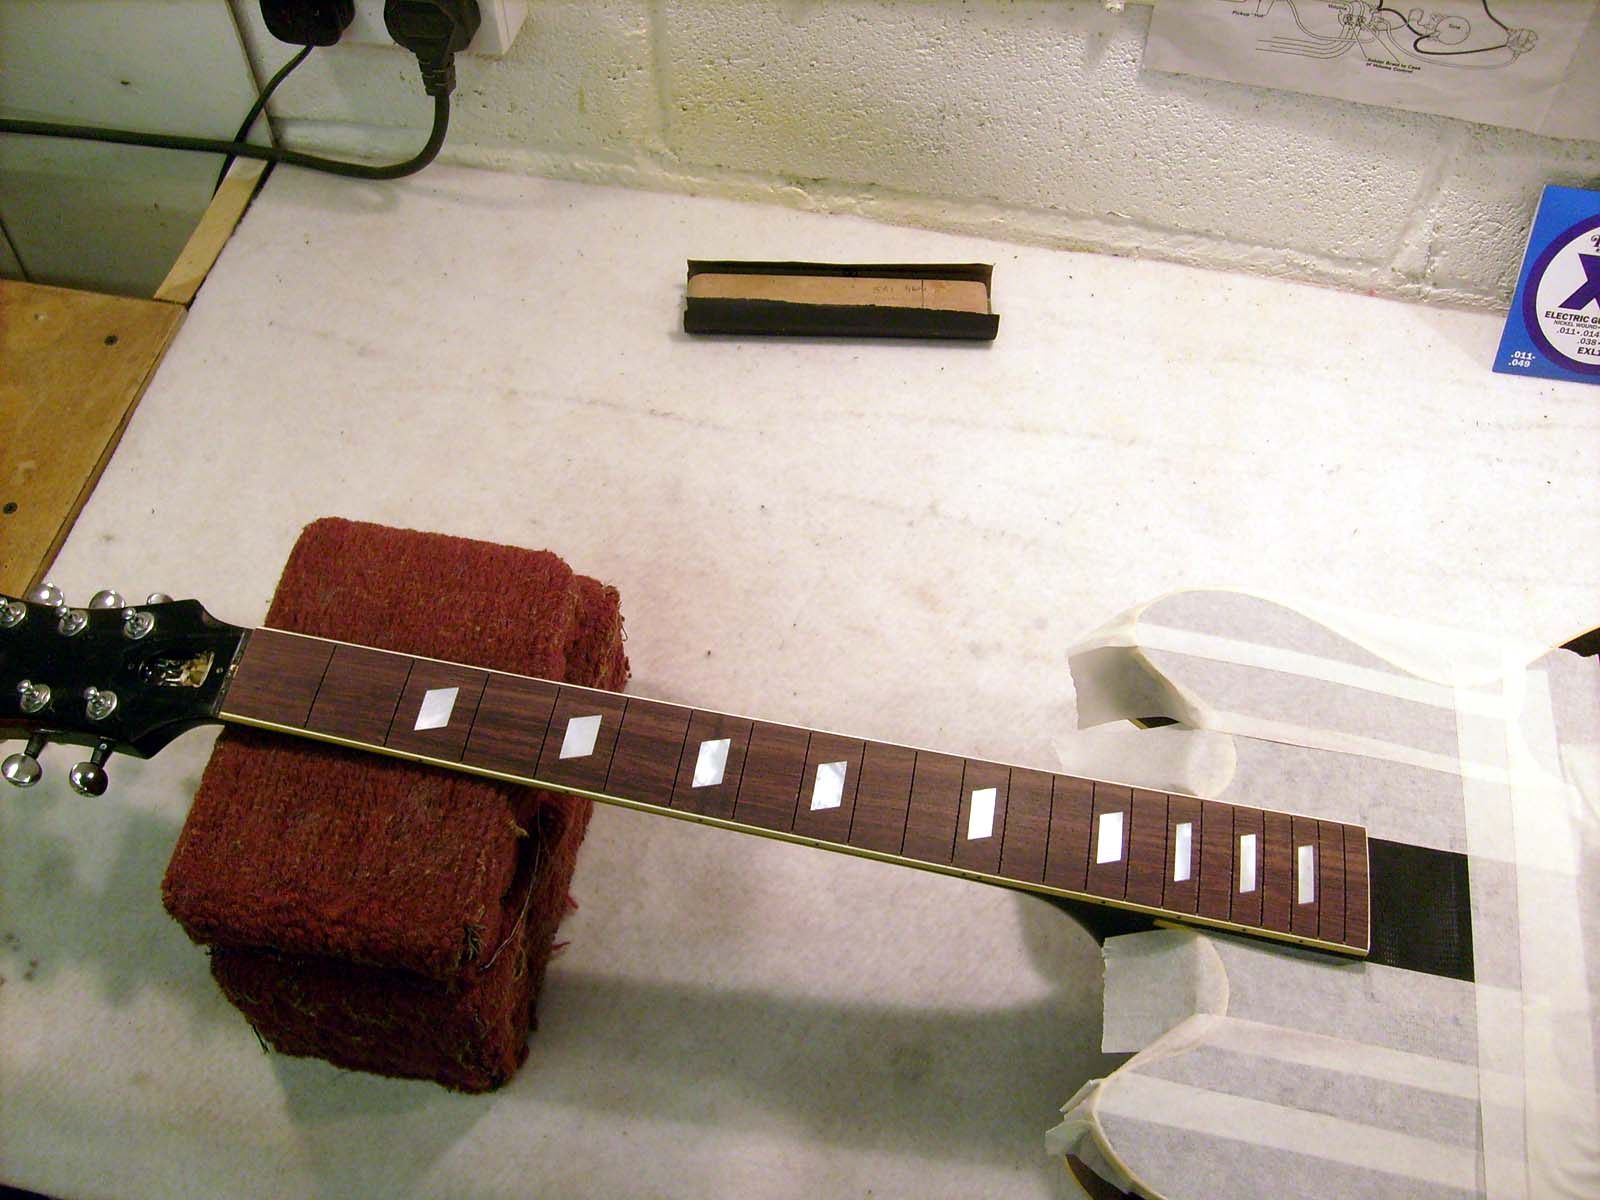 With fretboard reshot